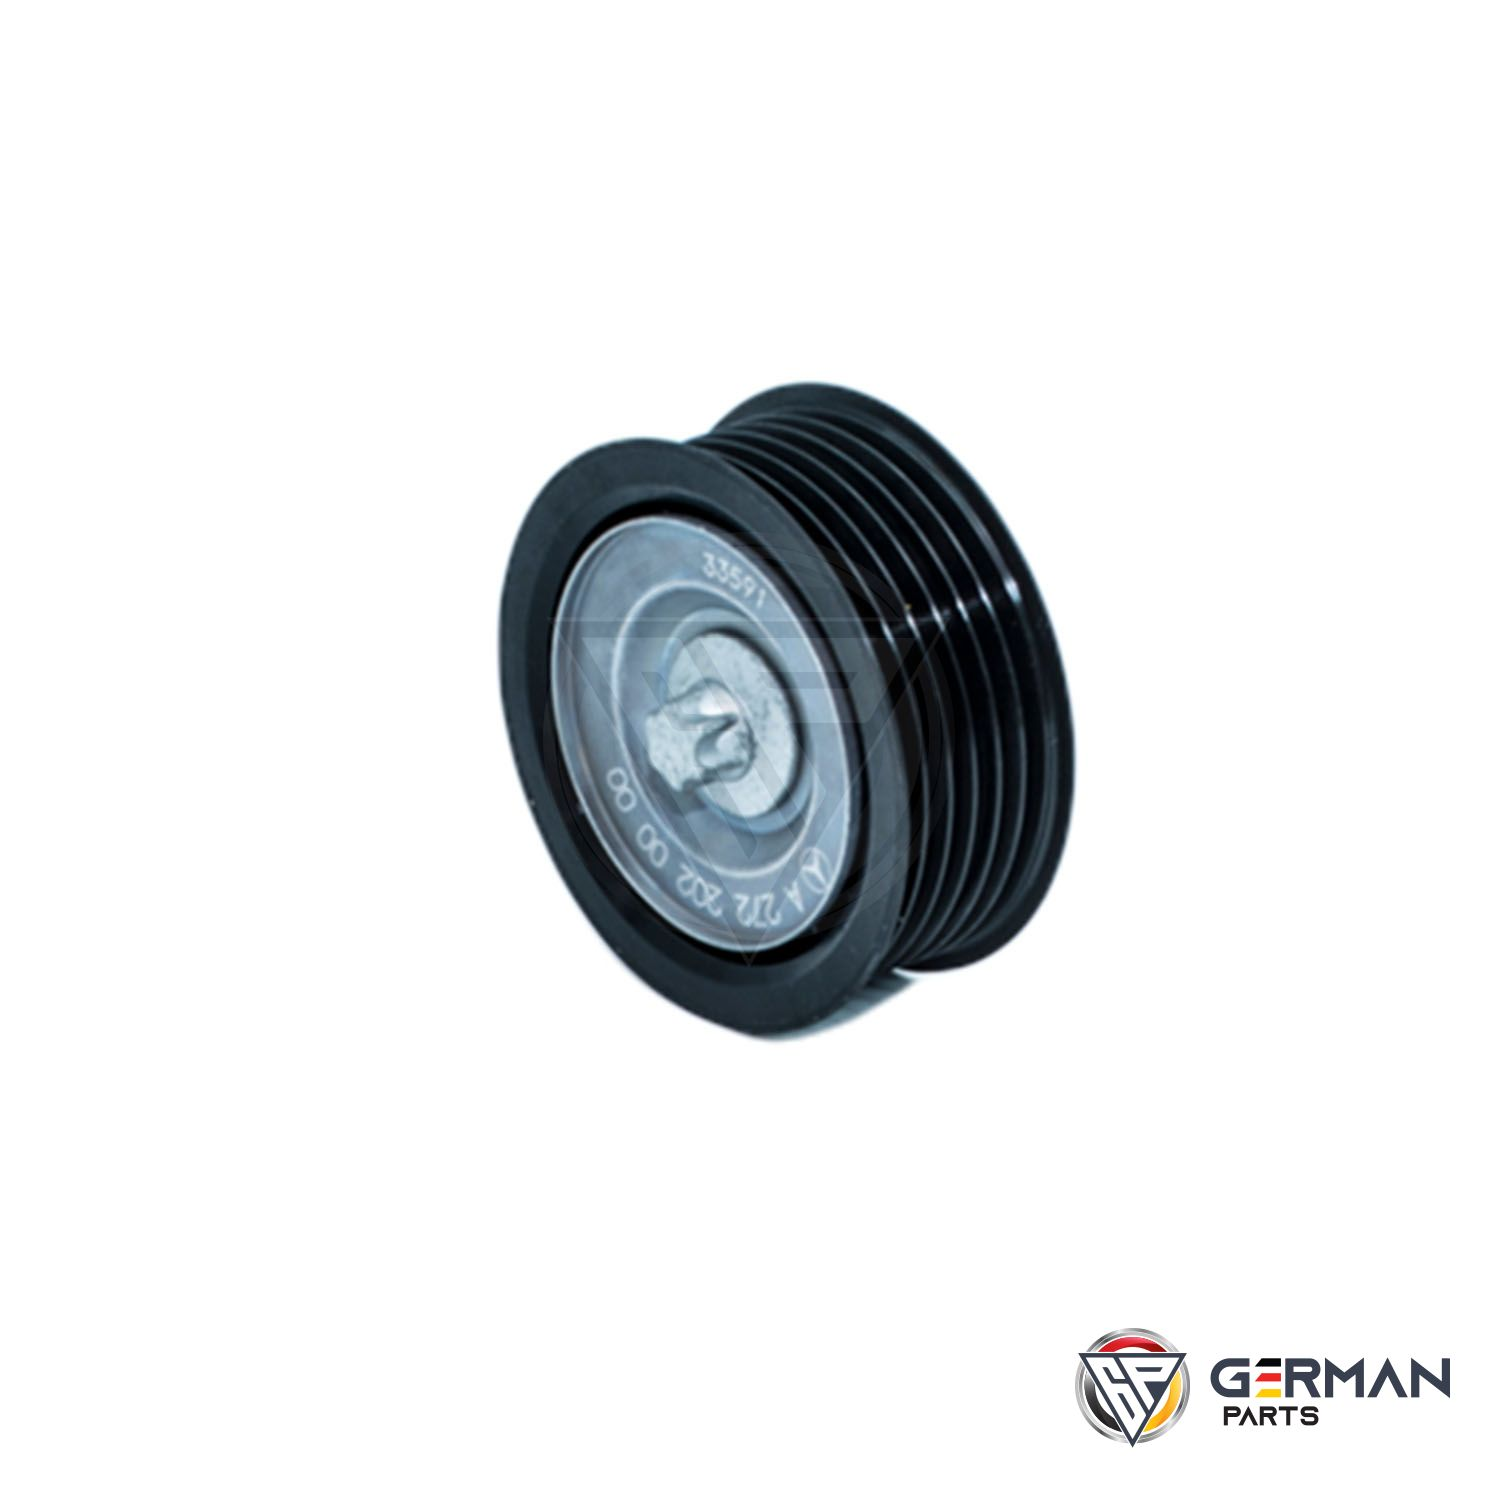 Buy Mercedes Benz Pulley 2722020000 - German Parts